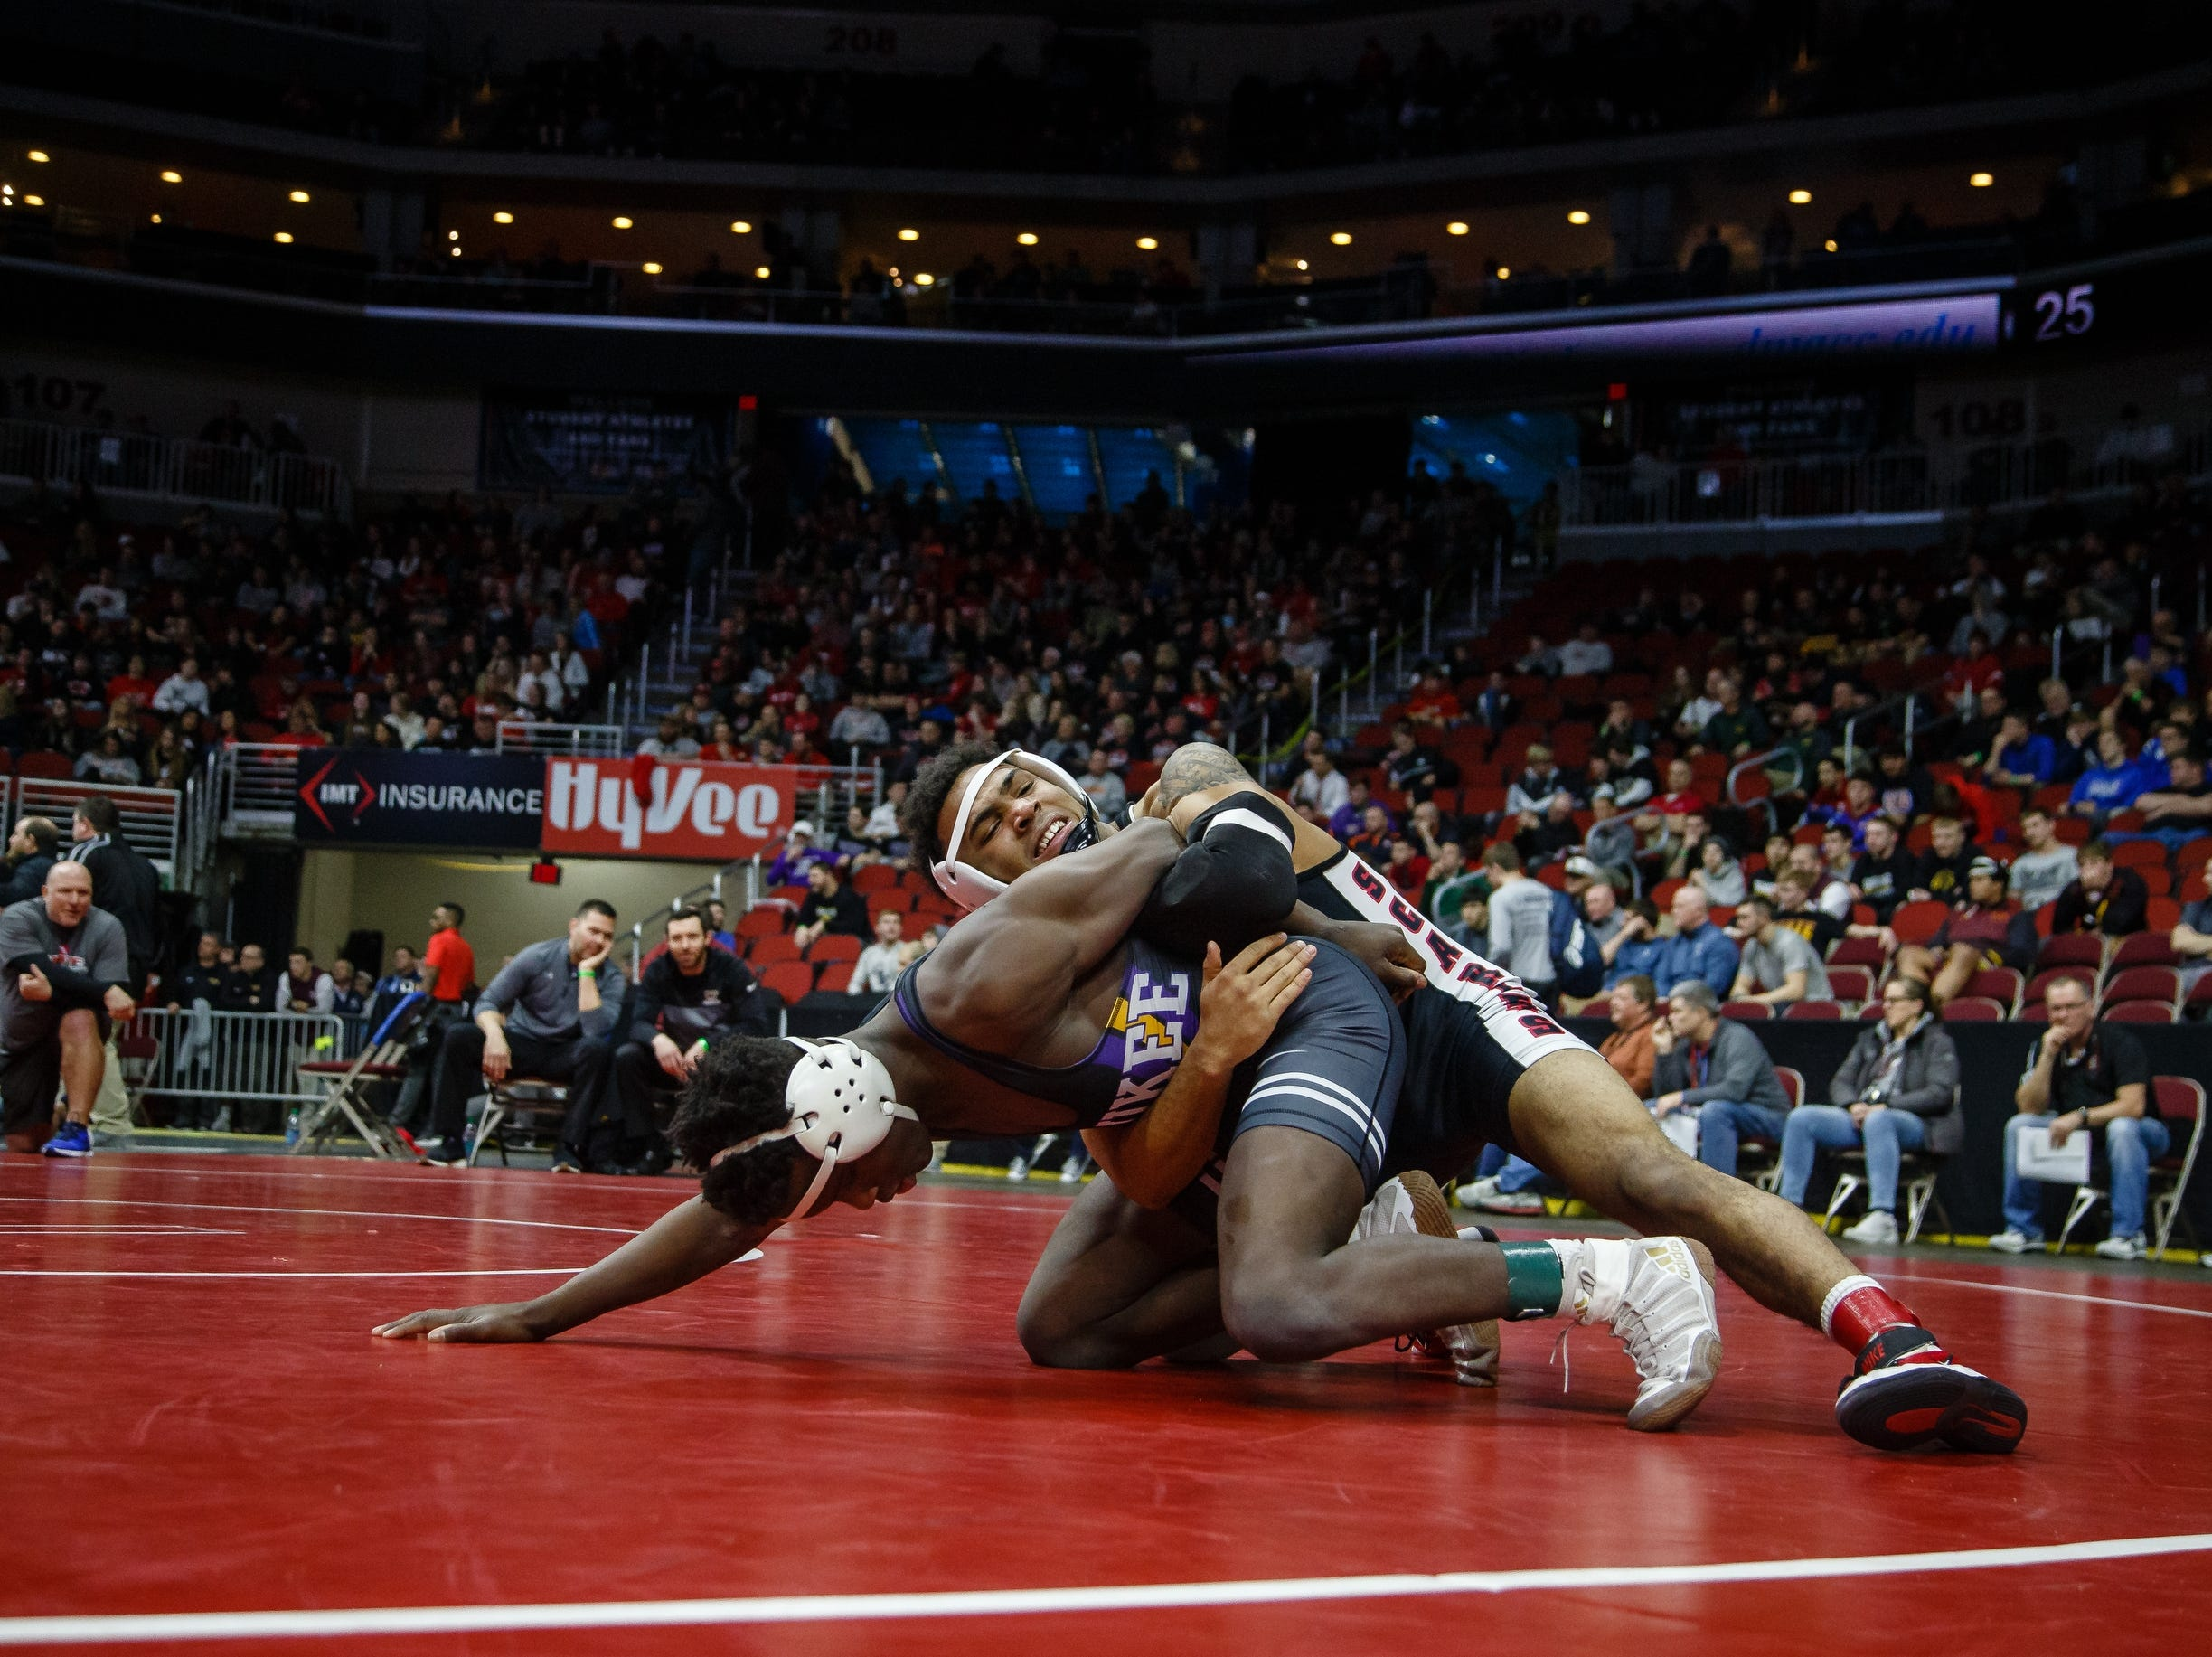 Deville Dentis of Des Moines East wrestles Jermaine Sammler of Wakee during their 3A 145 lb match at the state wrestling tournament on Thursday, Feb. 14, 2019 in Des Moines.